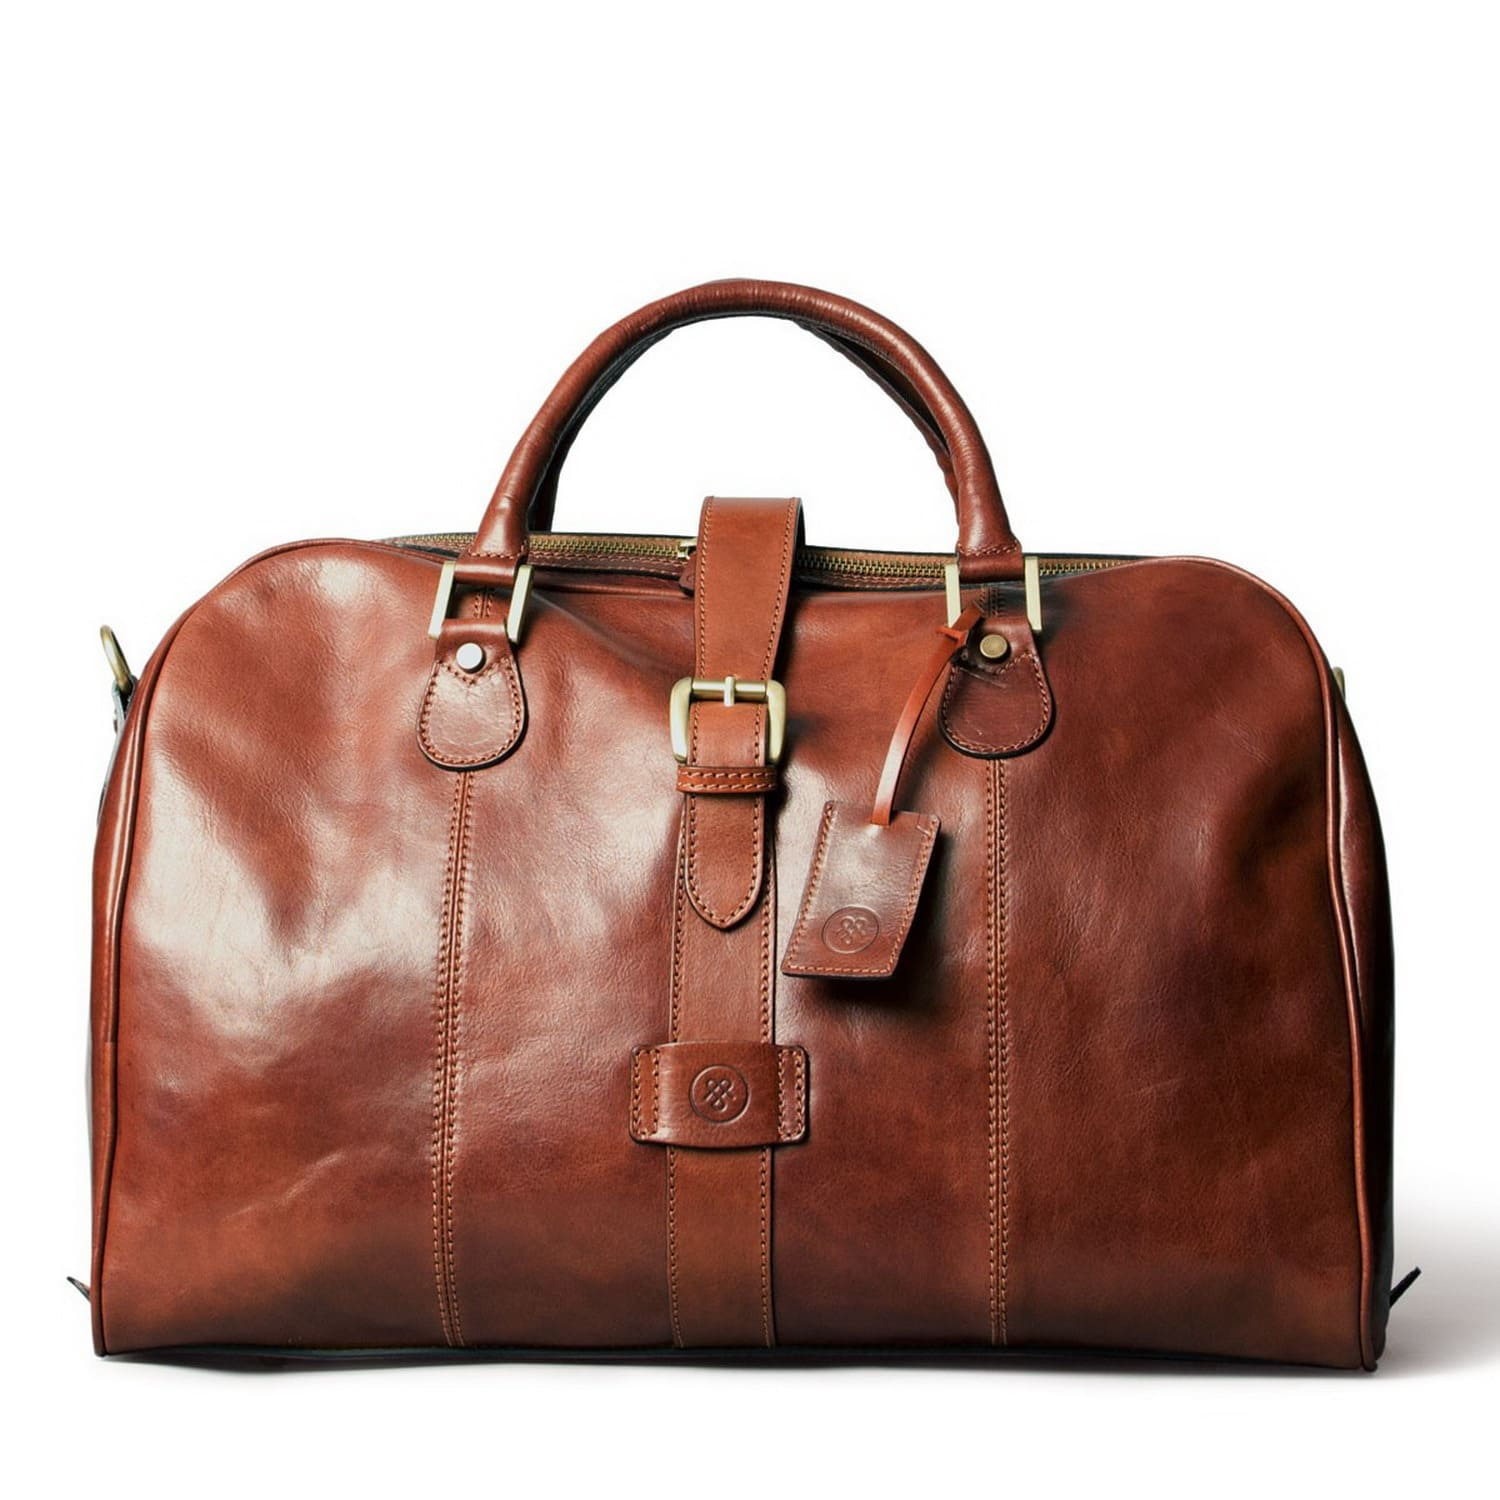 ff7f5f1549dbb Luxury Italian Leather Cabin Bag Farini Chestnut Tan | Maxwell Scott ...